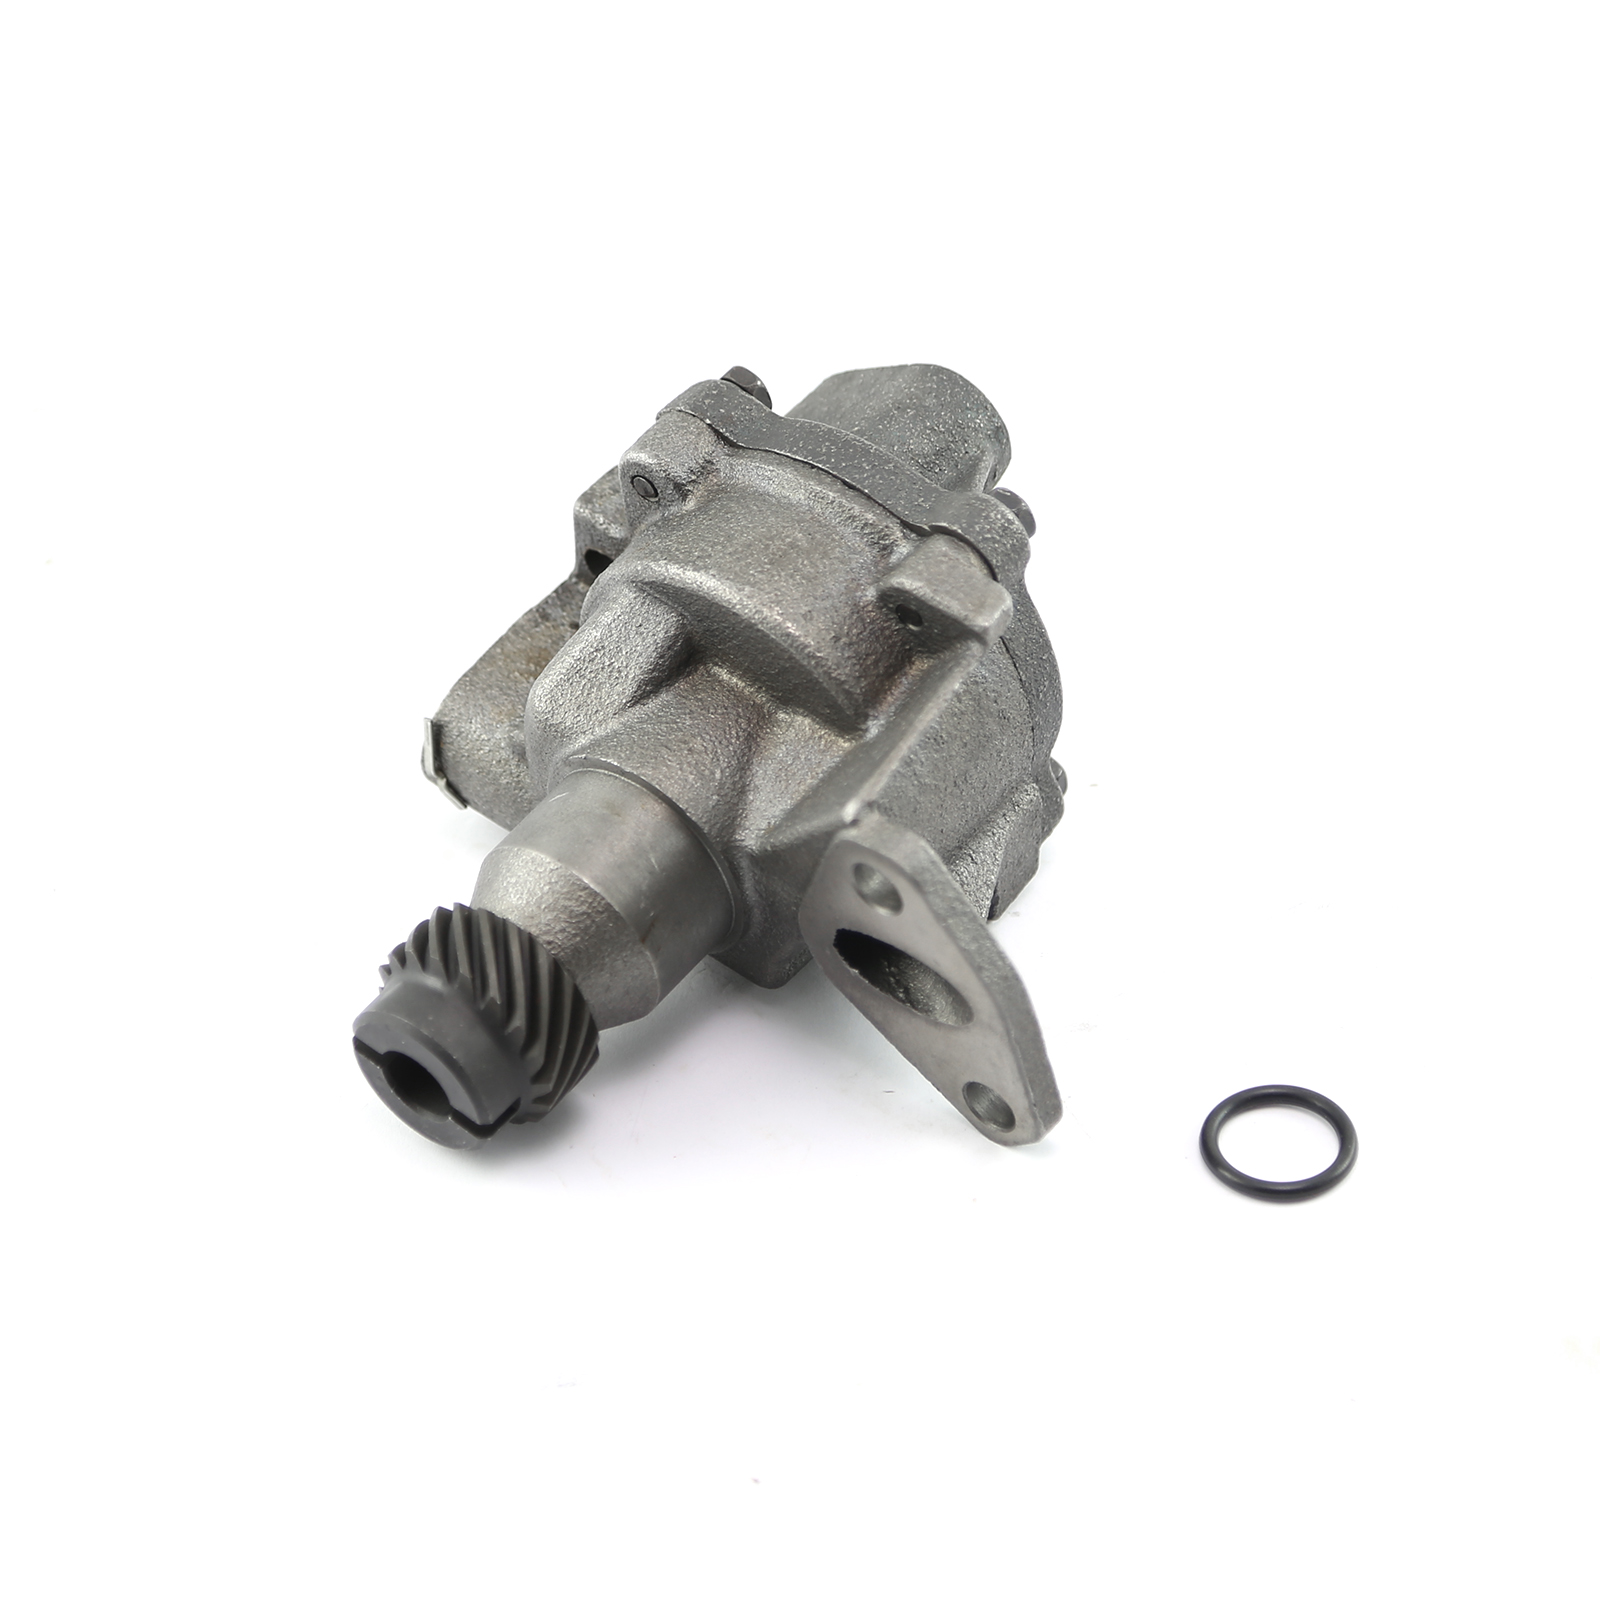 CHRYSLER DODGE PLYMOUTH Standard Volume Oil Pump